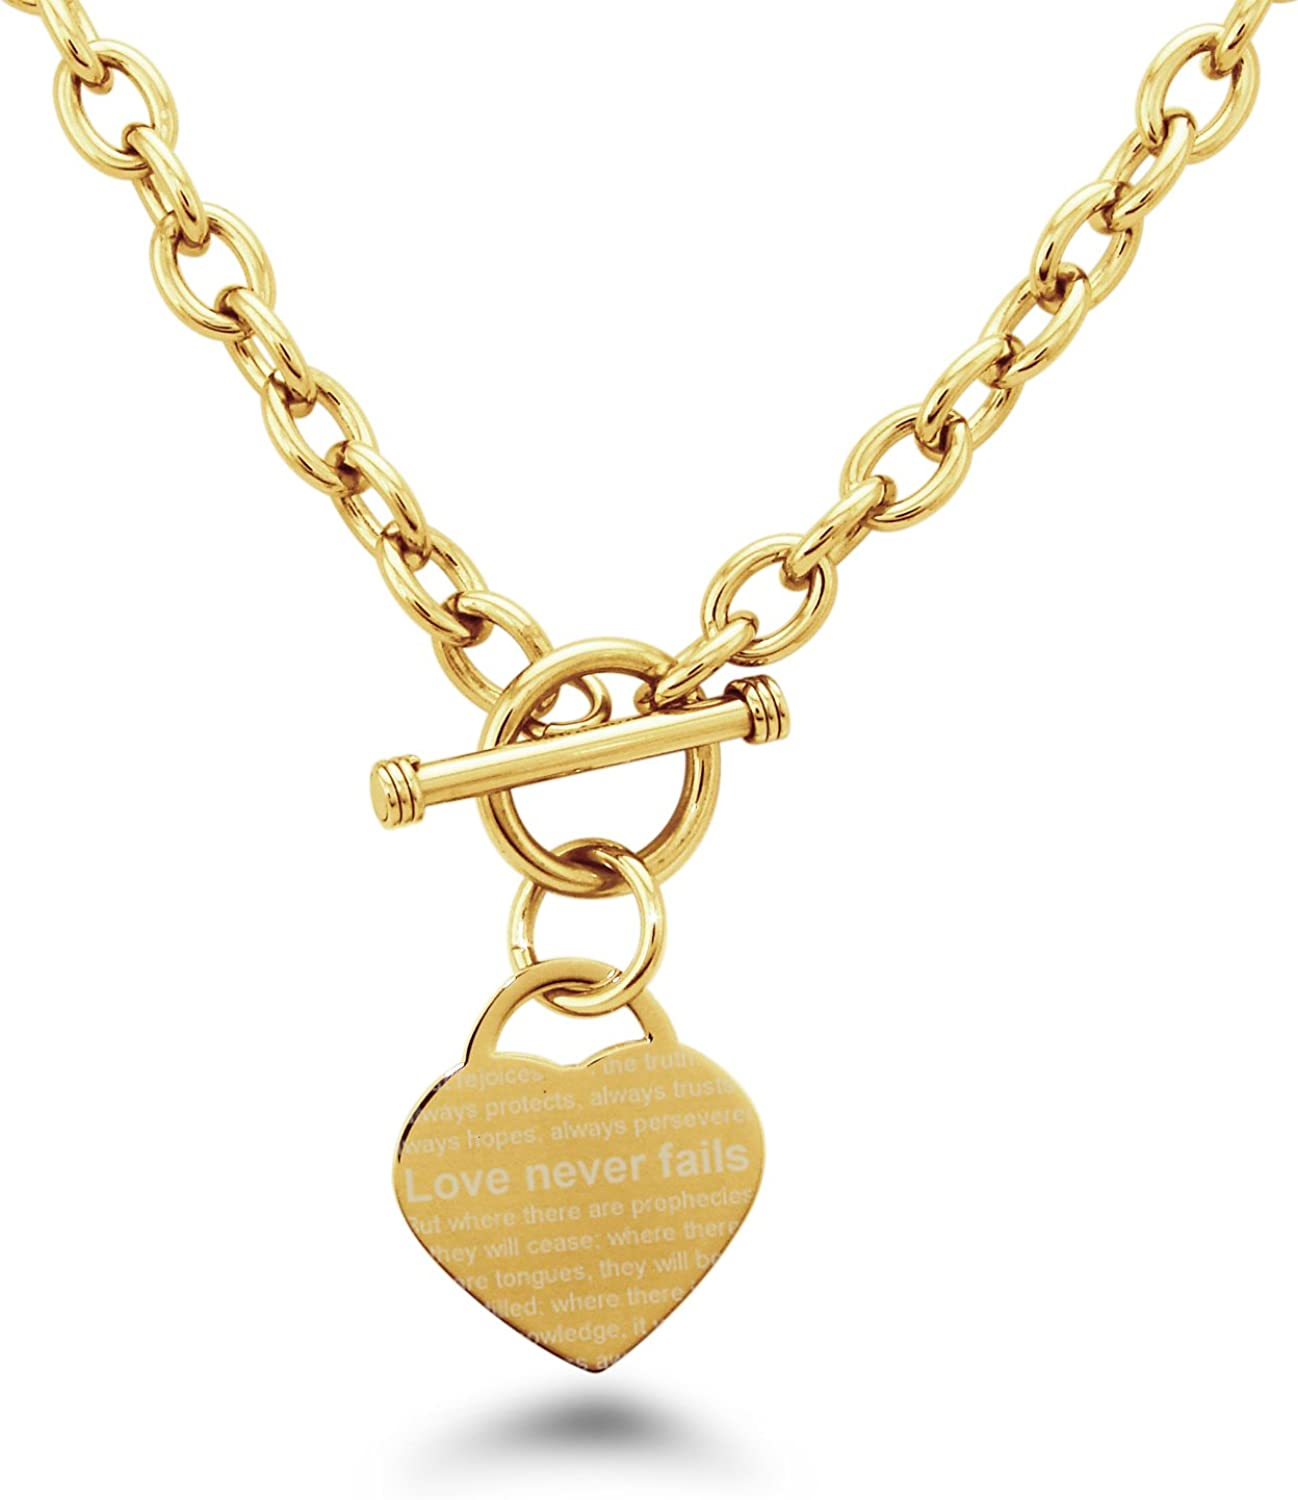 Gold Plated Stainless Steel Love Never Fails 1 Corinthians 13 Necklace Only 6-8 Heart Charm